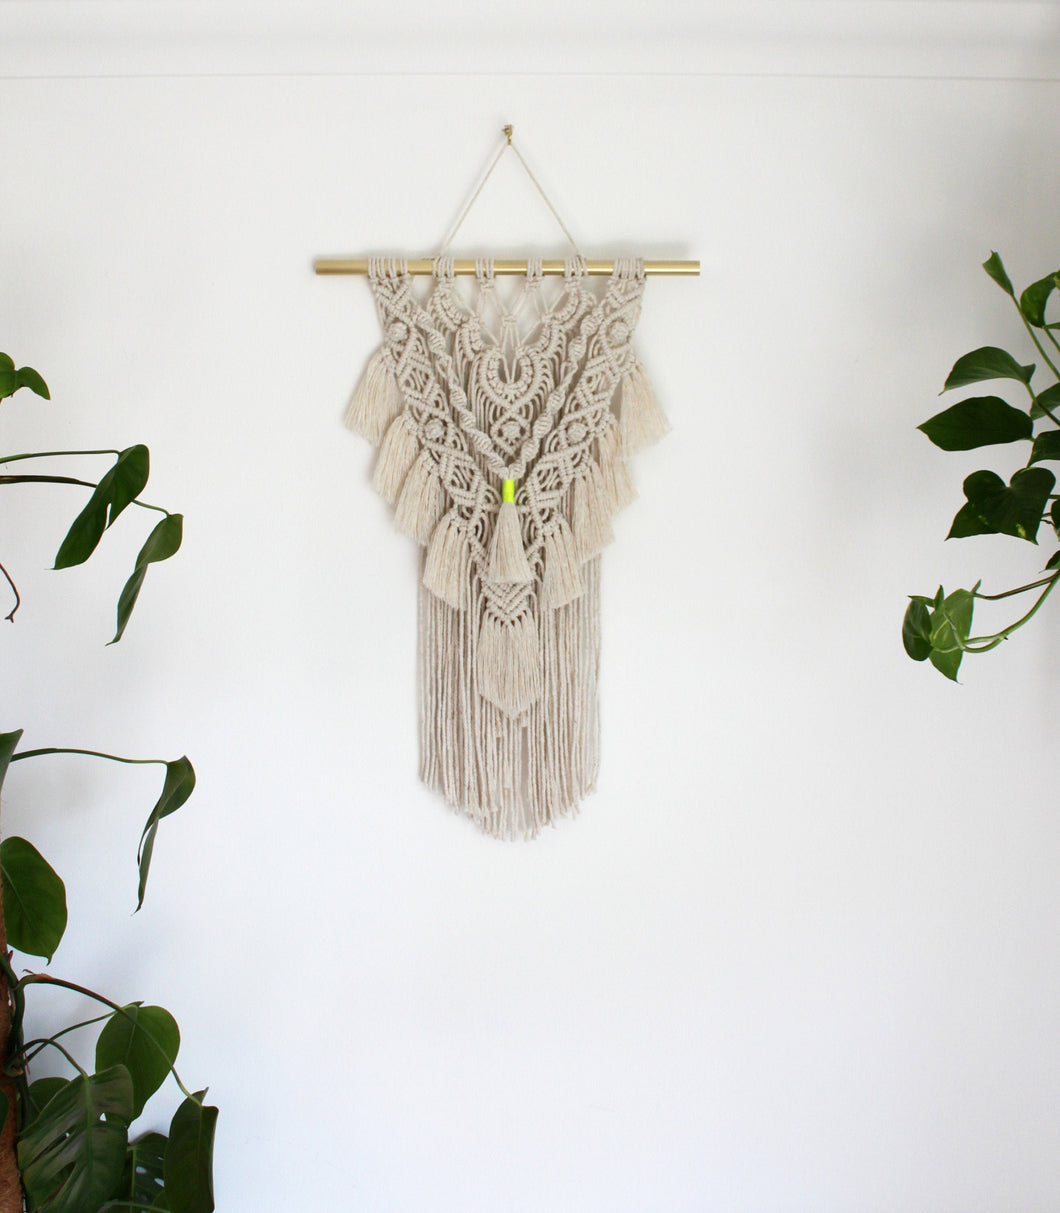 Natural Modern Wall Hanging with Neon Accent - Large